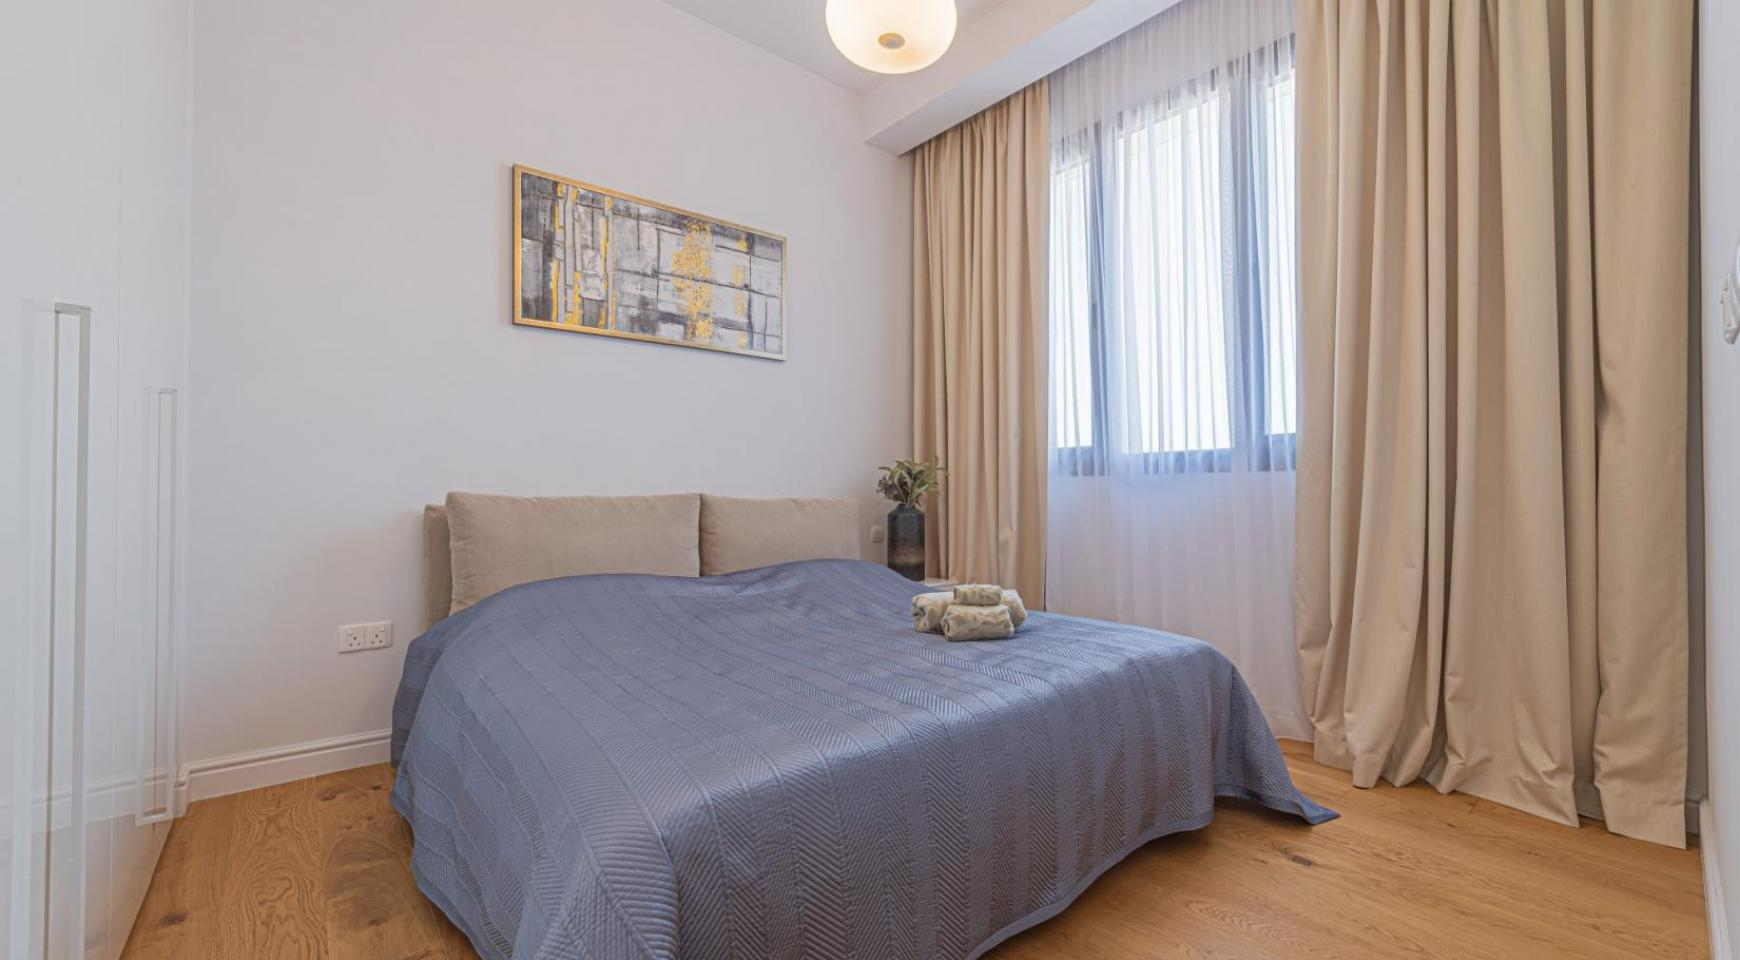 Hortensia Residence, Apt. 201. 2 Bedroom Apartment within a New Complex near the Sea  - 58